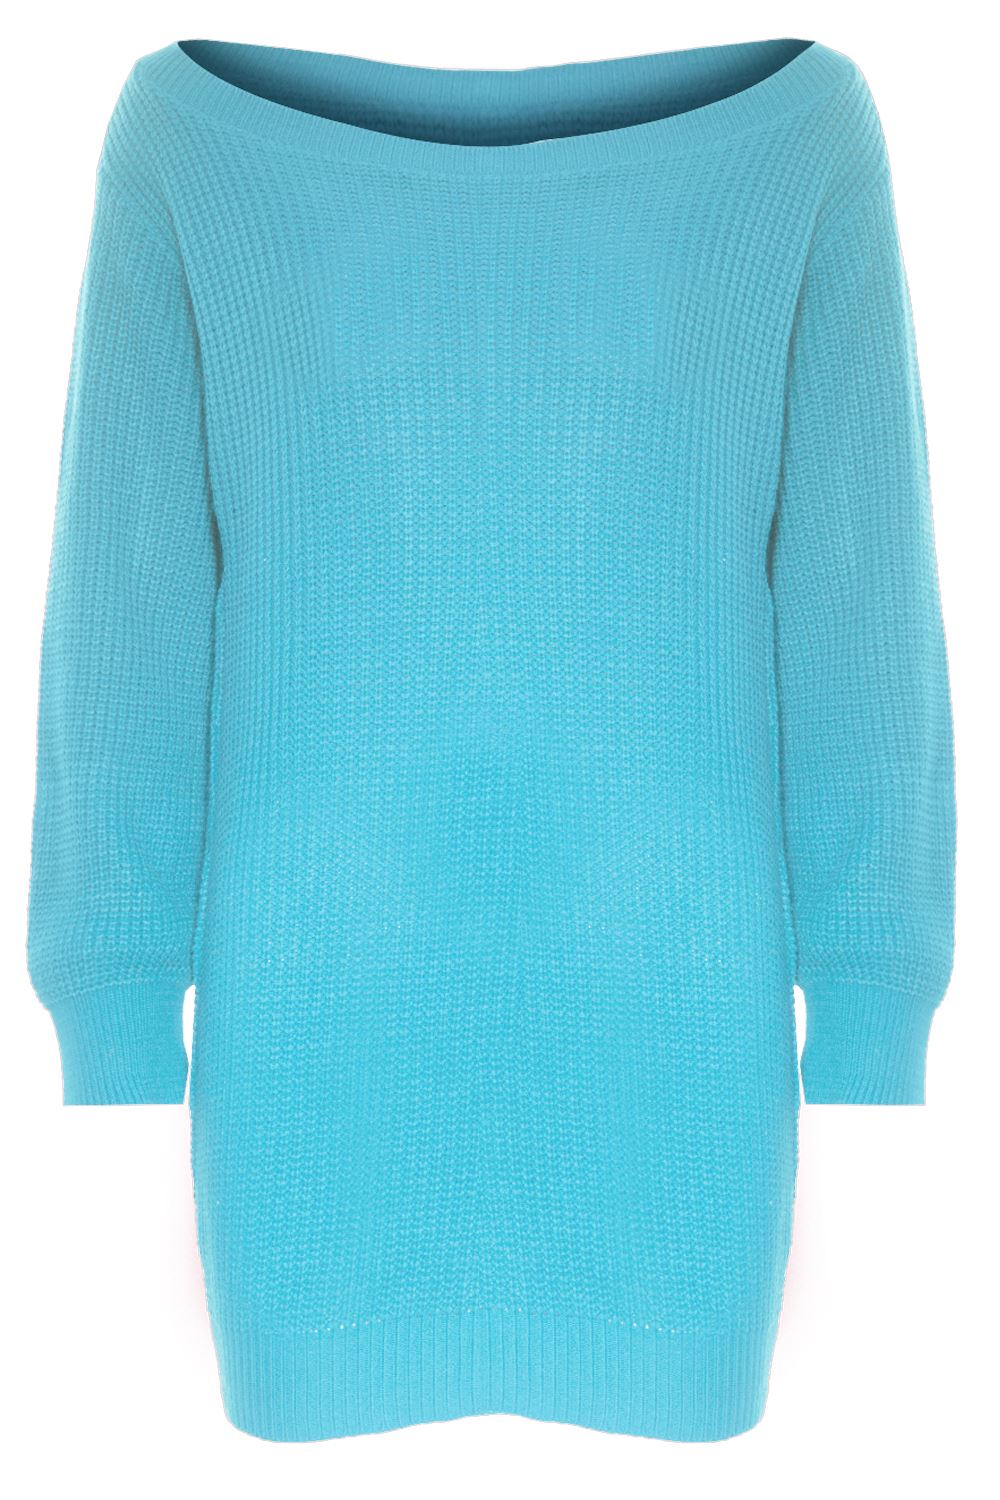 Details about Ladies Womens Off Shoulder Chunky Knit Oversized Baggy Tunic Jumper Mini Dress